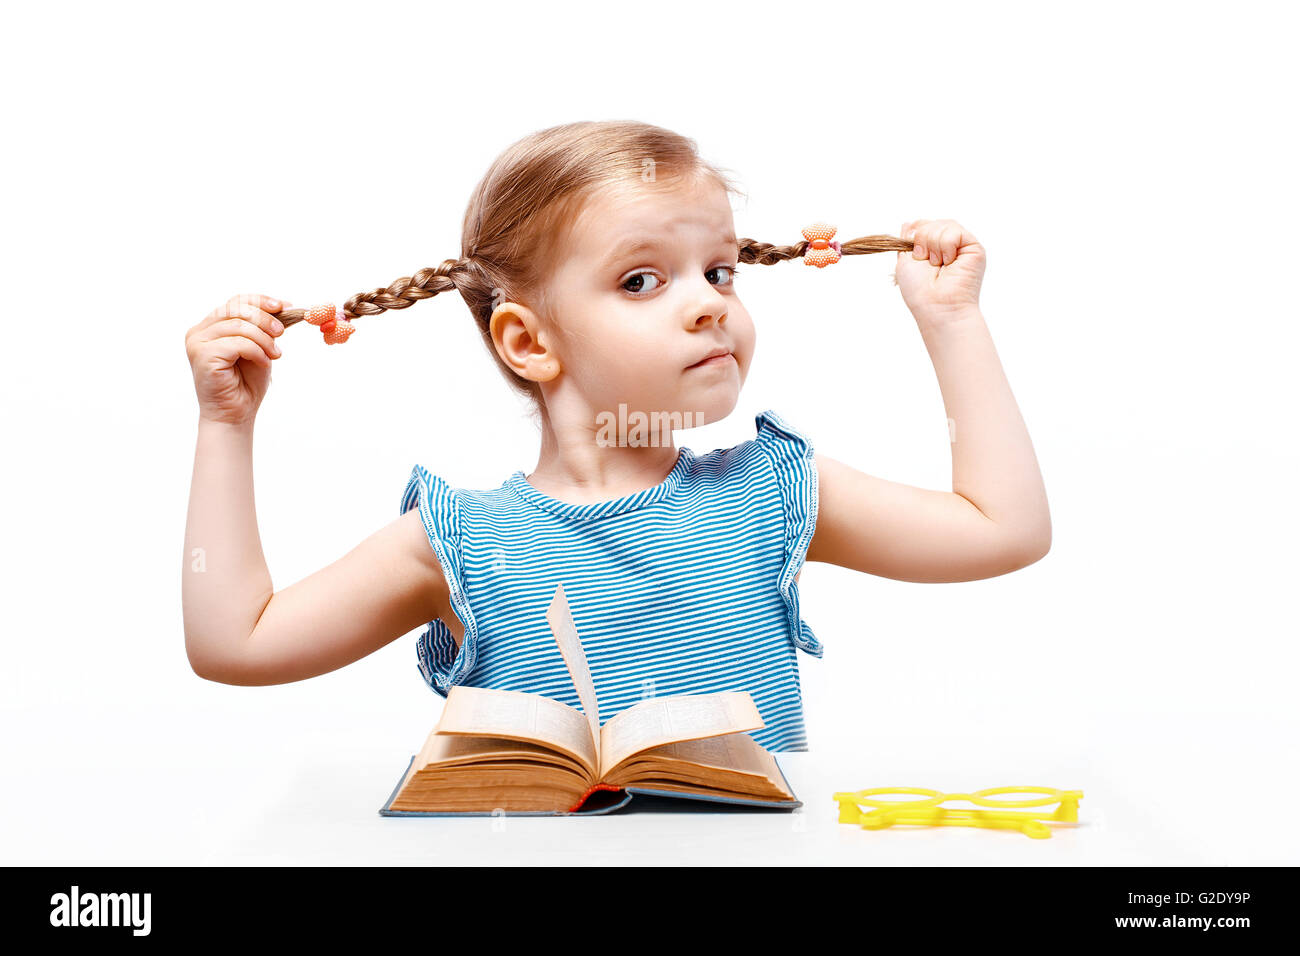 Little girl holds with hands the braids so far sits at a table. white background. isolate. - Stock Image